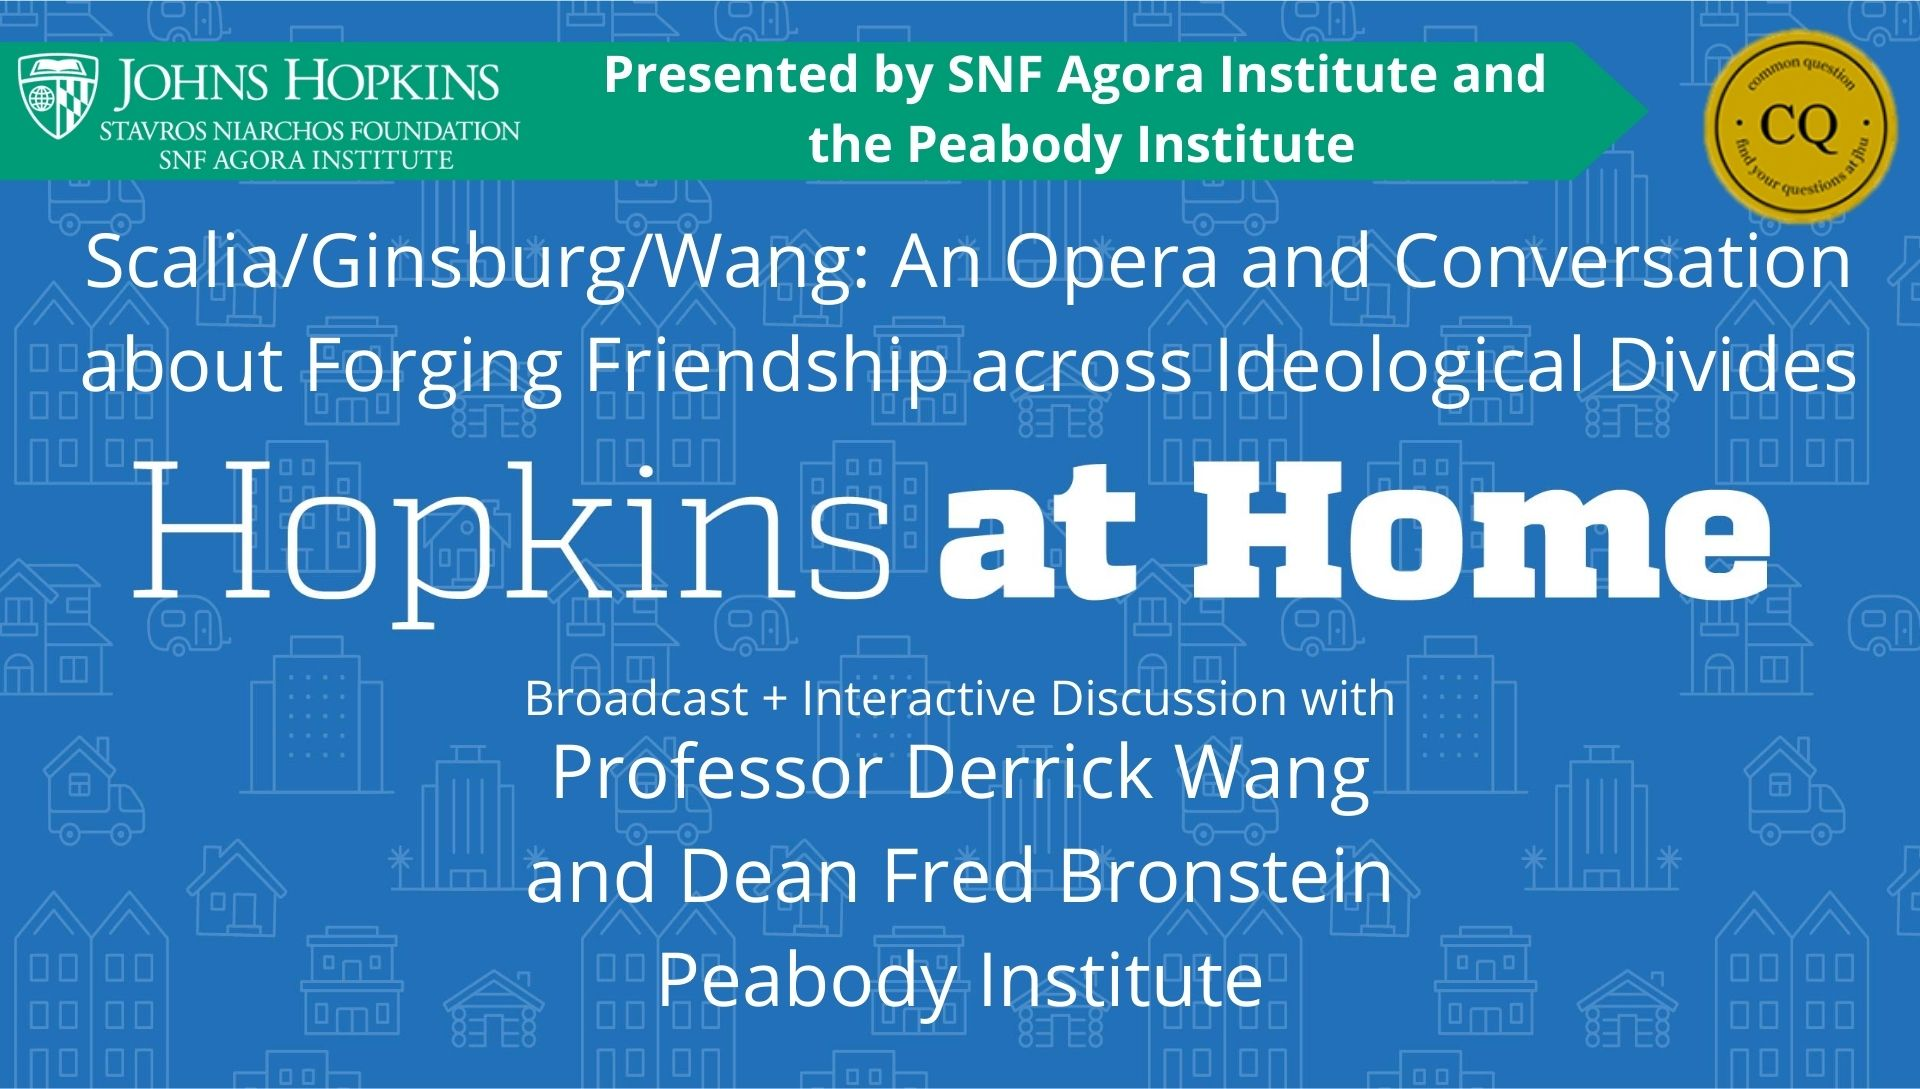 Scalia/Ginsburg/Wang: An Opera and Conversation about Forging Friendship across Ideological Divides Header Image